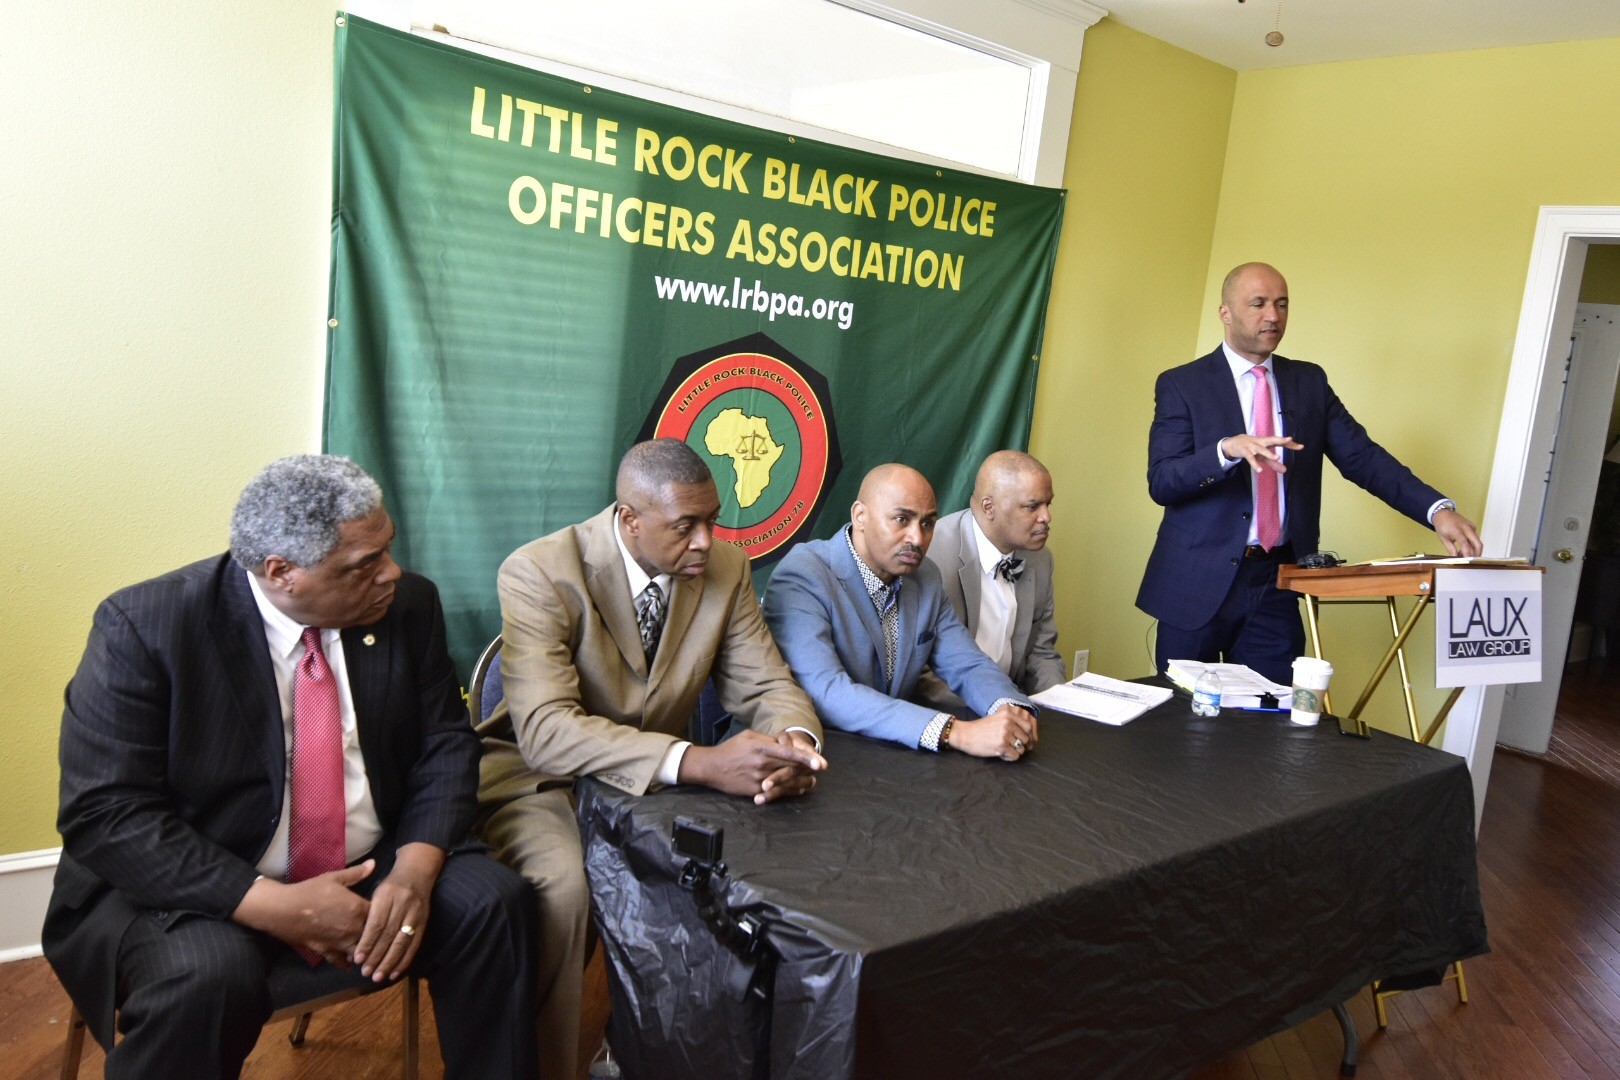 City settles federal discrimination lawsuit filed by black LRPD officers